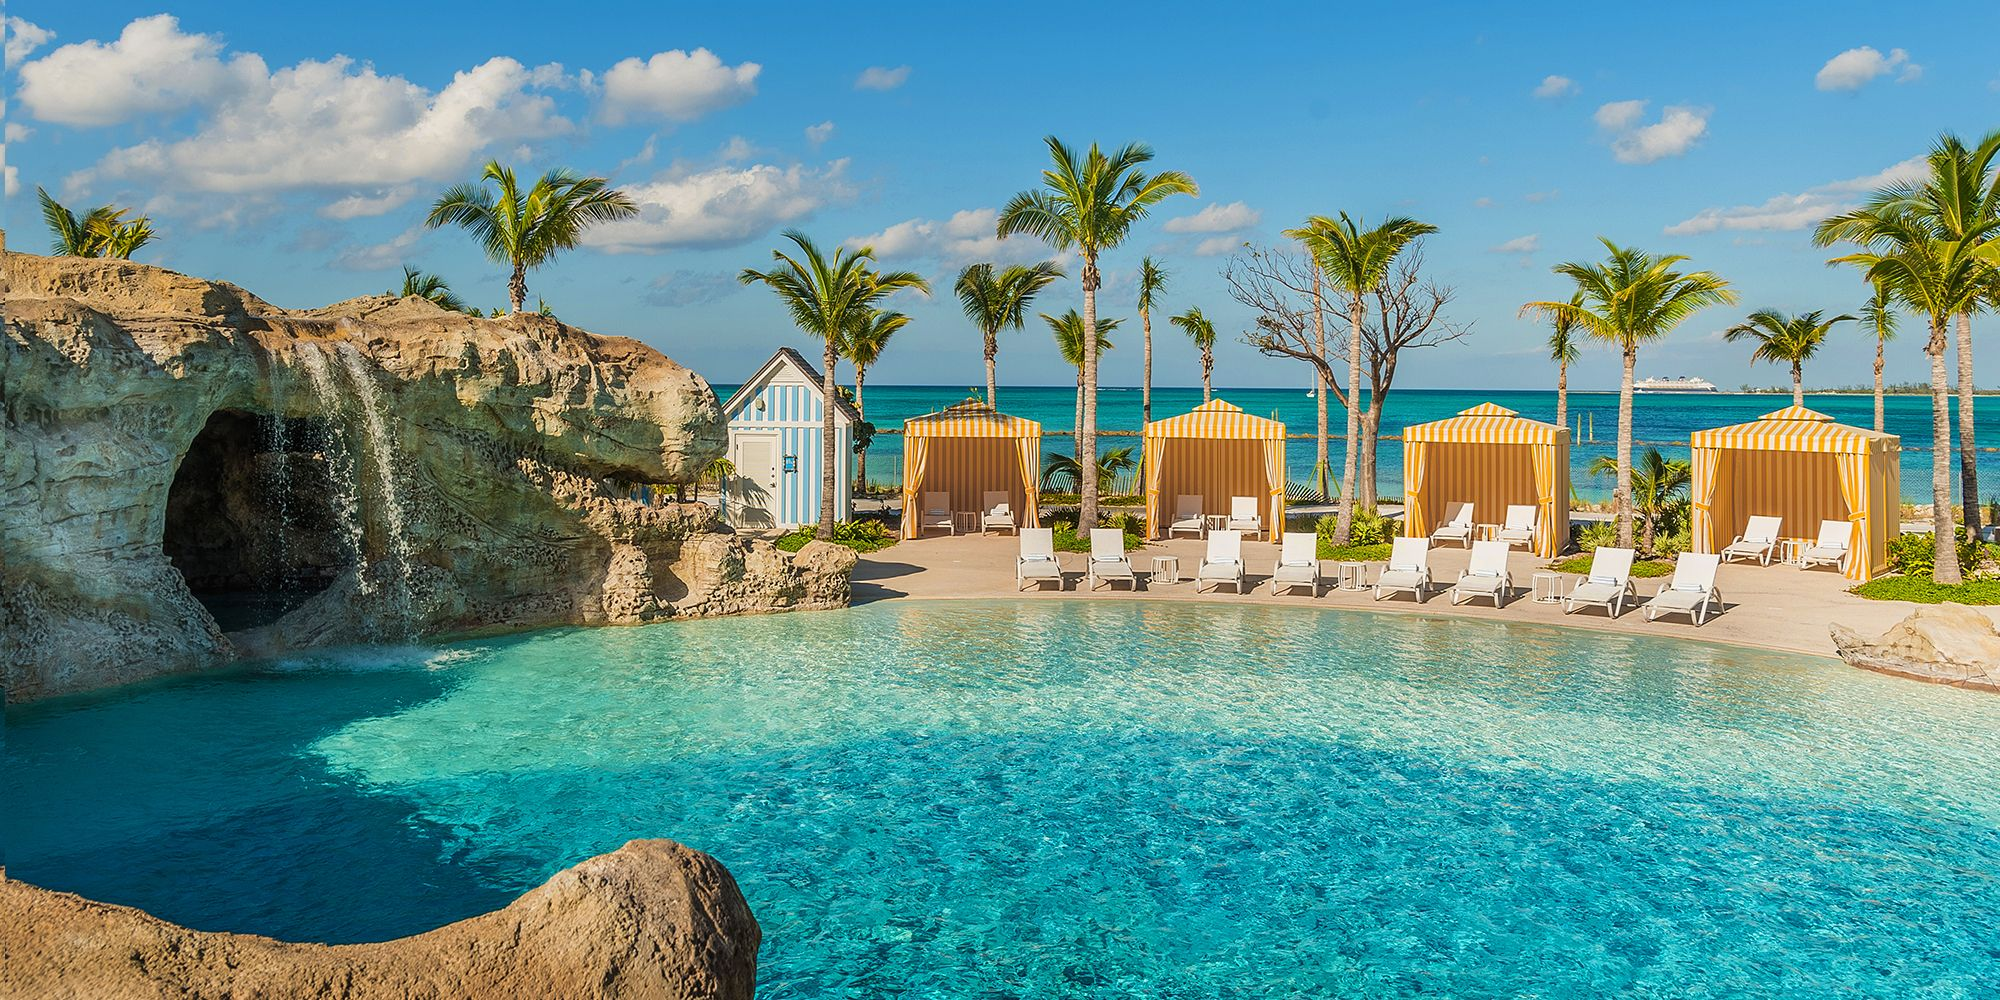 10 Best Bahamas Resorts To Visit In 2018   Top Rated Resorts In The Bahamas